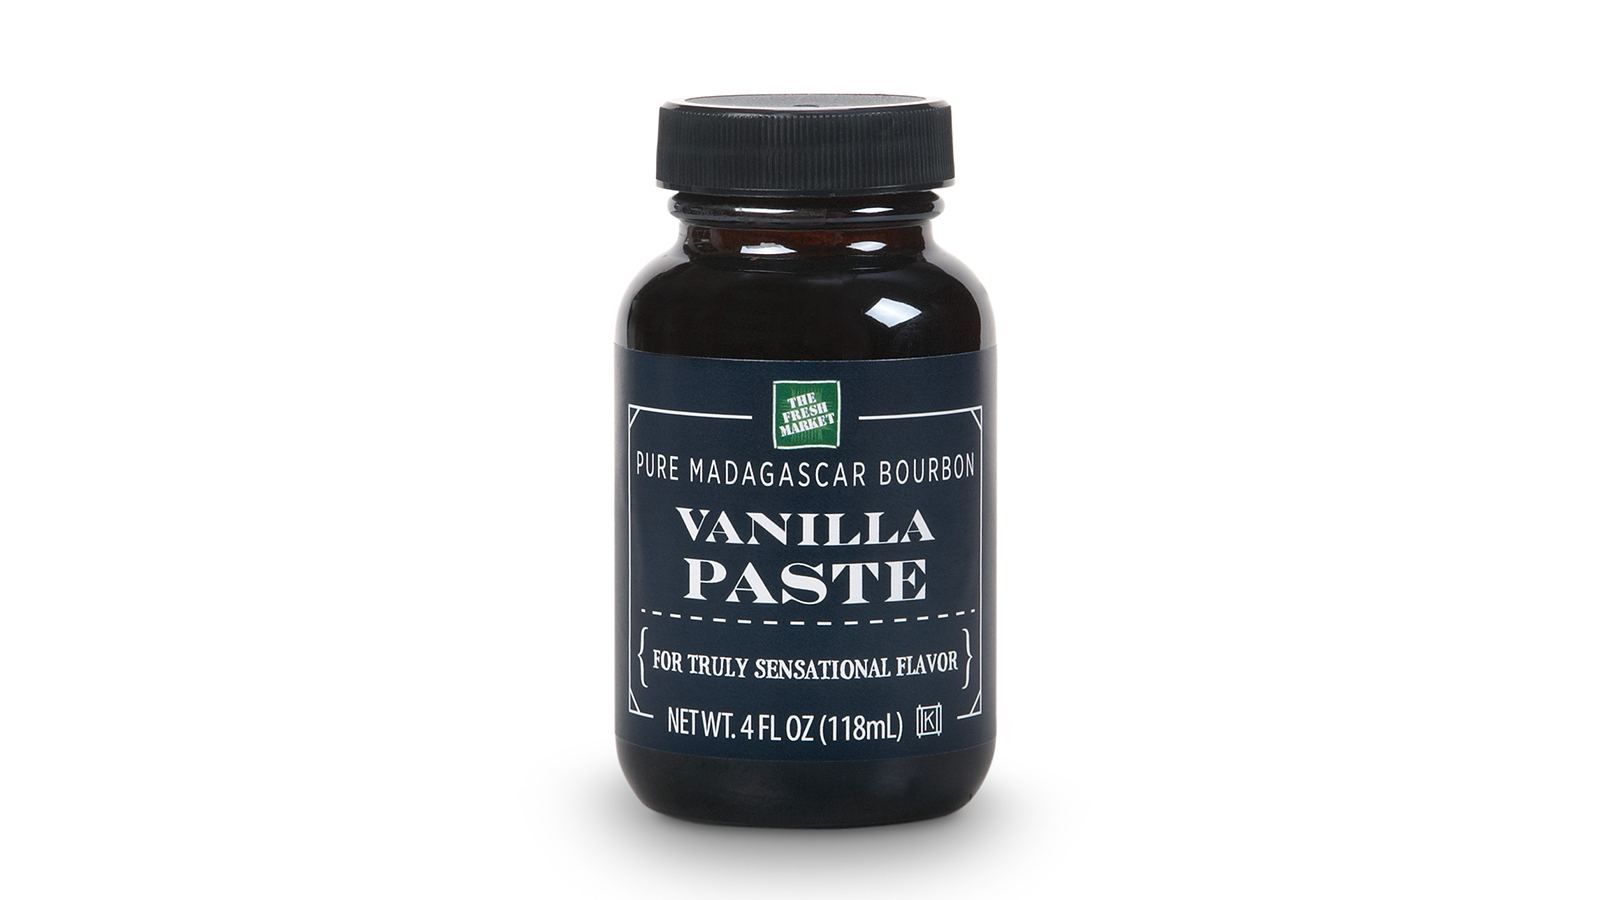 The Fresh Market Pure Madagascar Bourbon Vanilla Paste